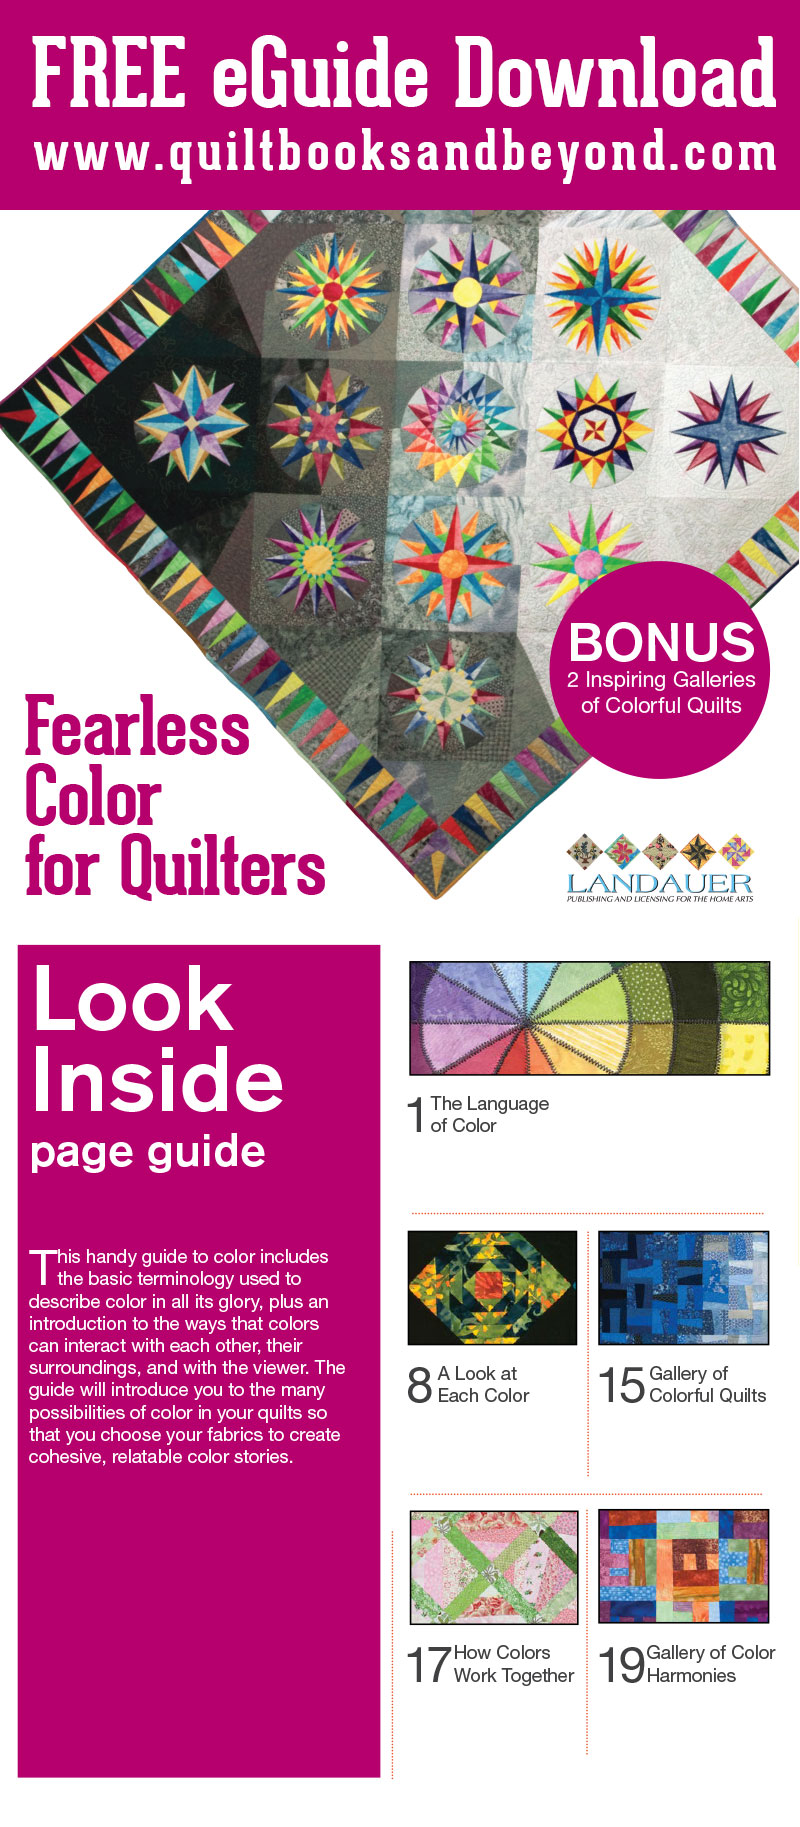 FreeColorForQuilterseGuide